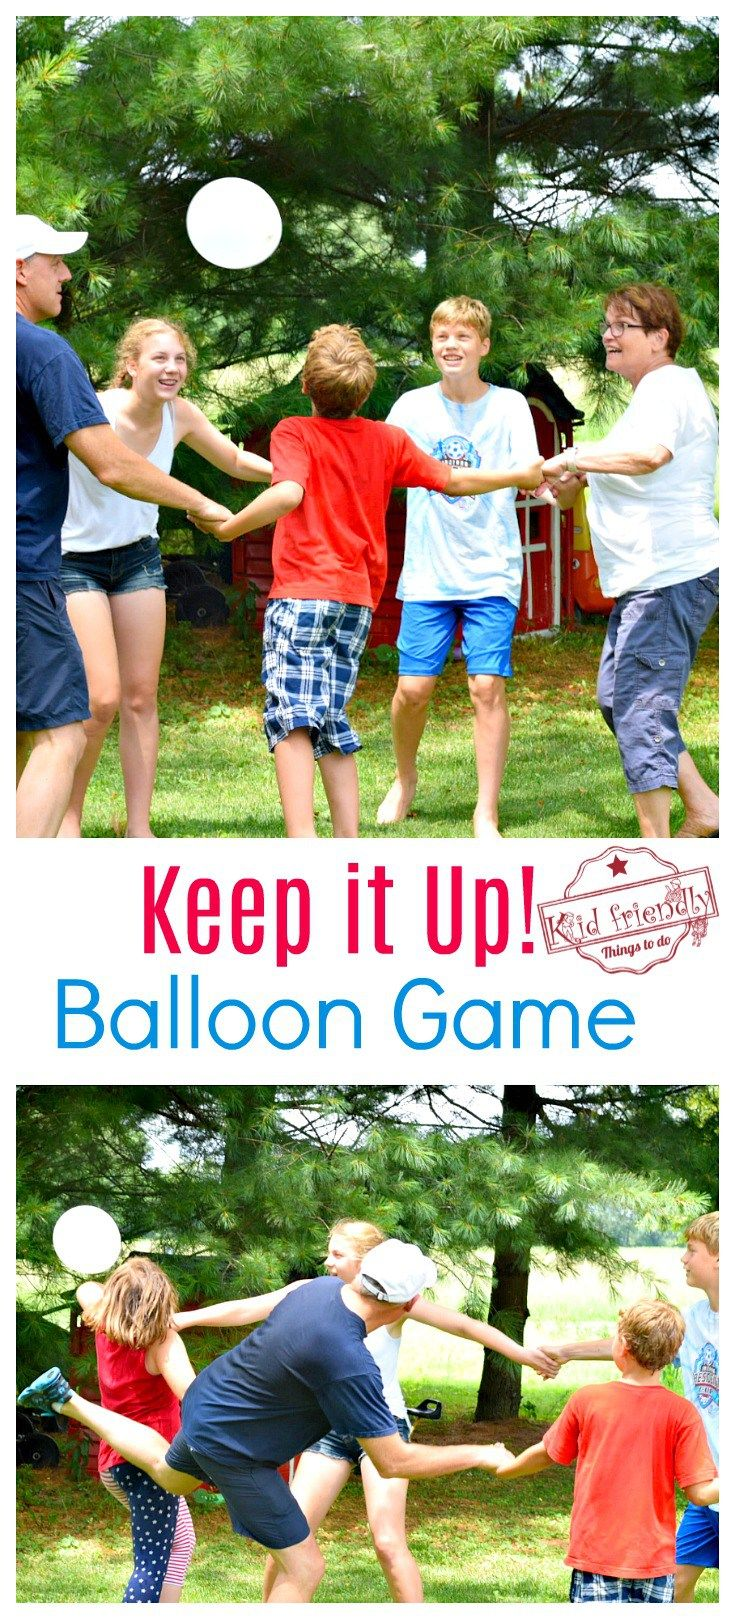 Just Keep It Up - A Fun Balloon Game For Kids, Teens, And -4498